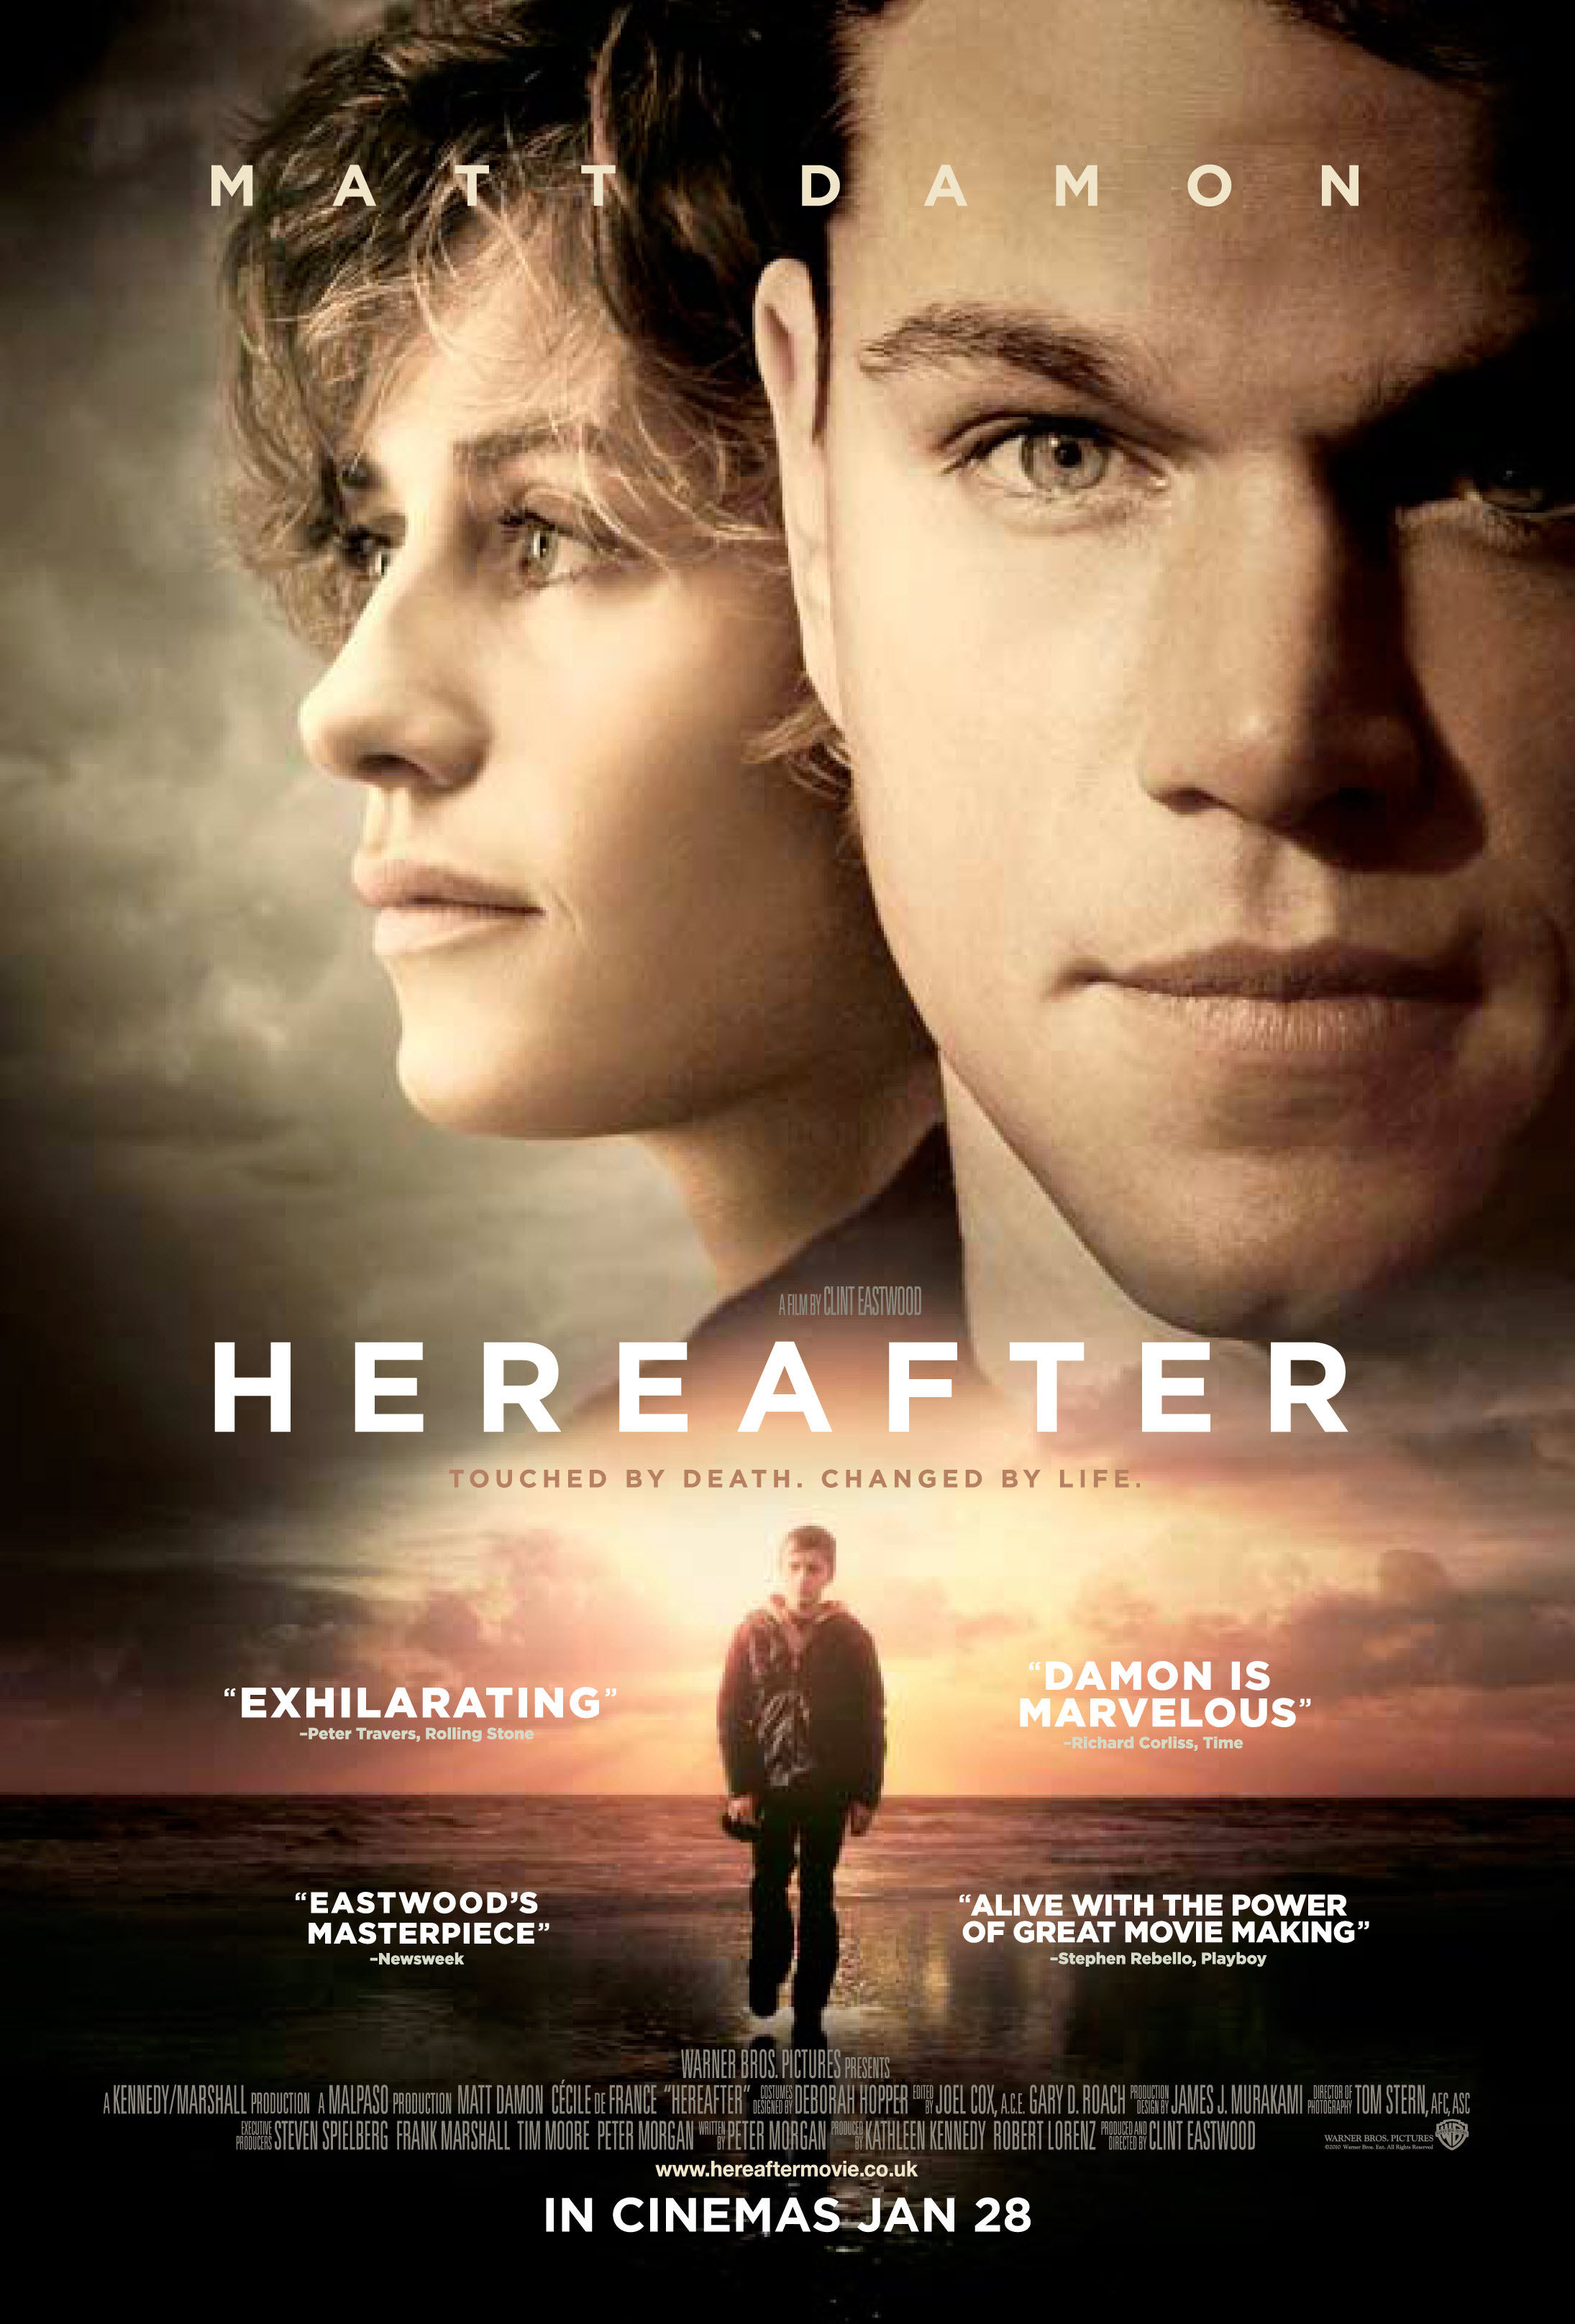 an comparison of the movie and novel the sweet hereafter A comparison of the book vs the movie will be written book vs movie by ally the manic listmaker films 17 comments 3 followers 3 the sweet hereafter - have always been curious about the russell banks novel.